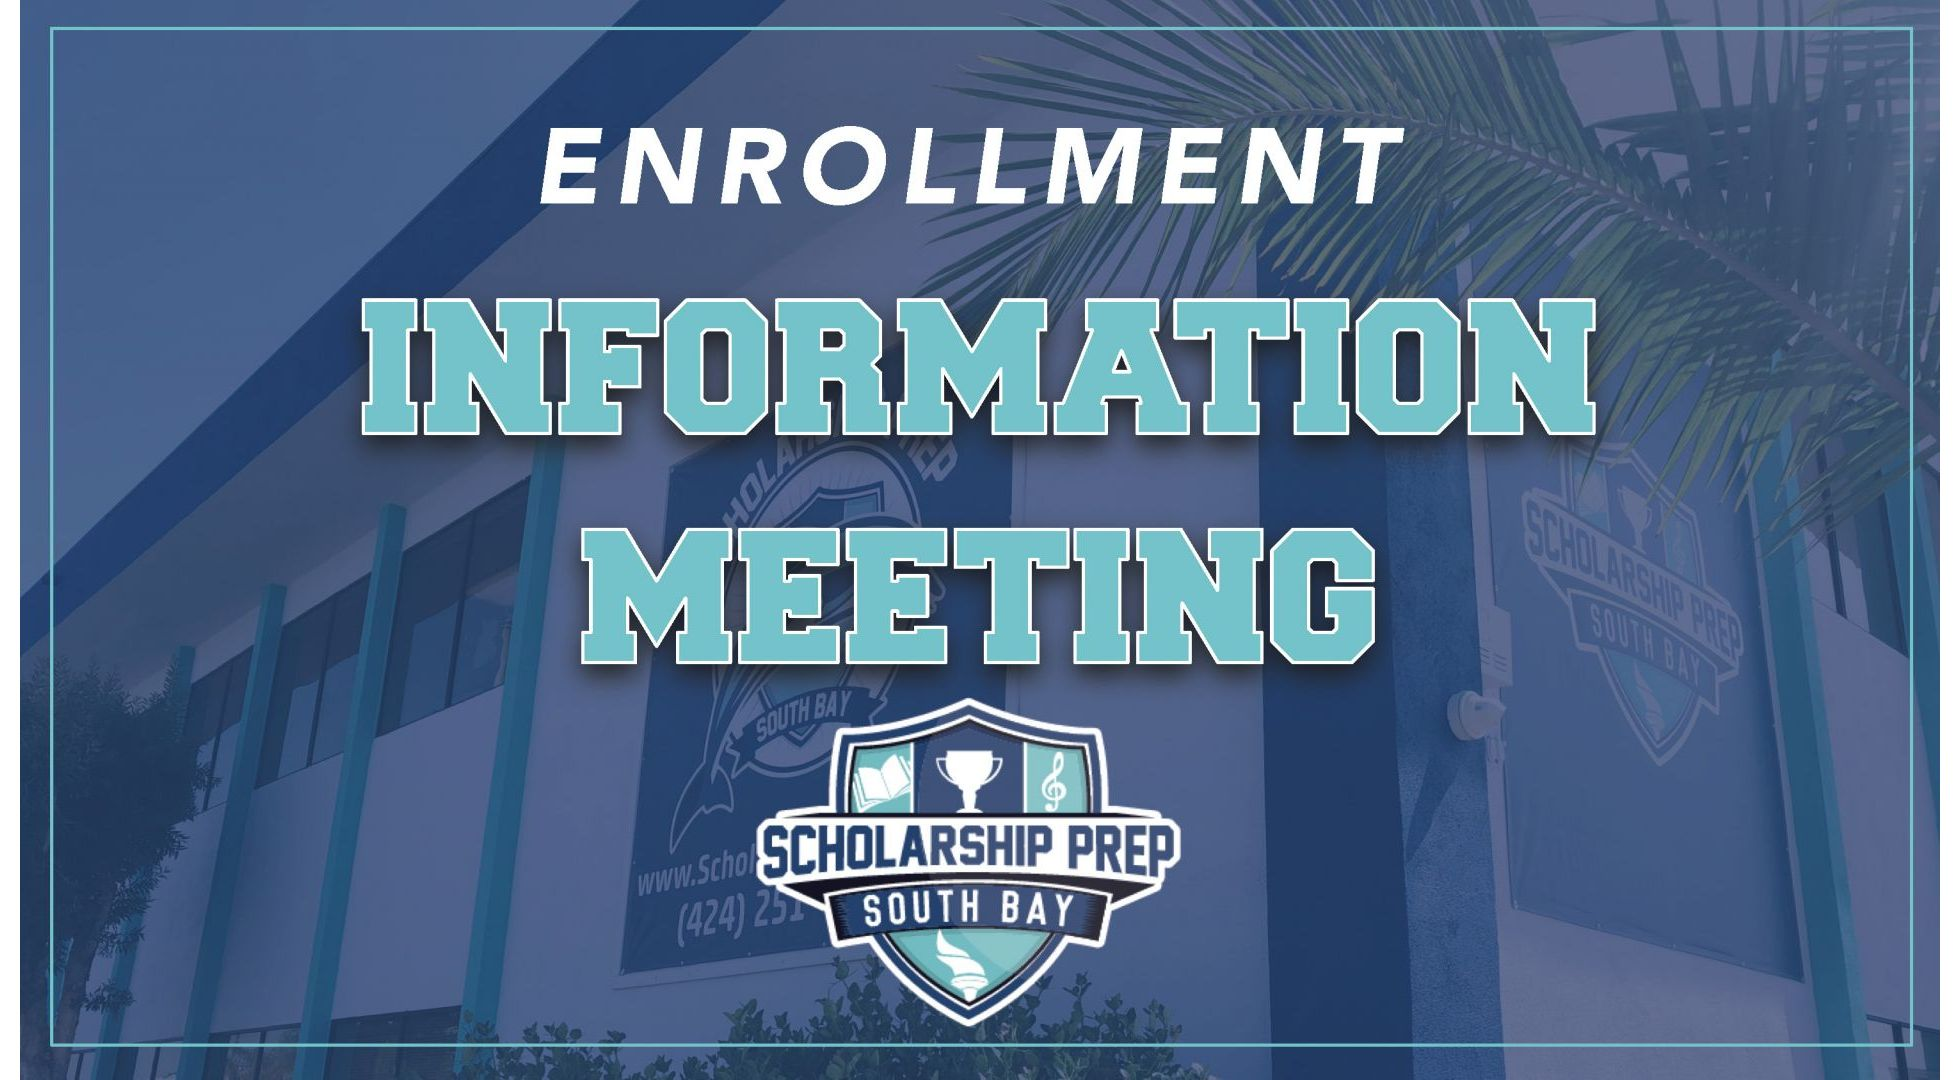 UPDATED: Join Us For An Enrollment Information Meeting & Campus Tour